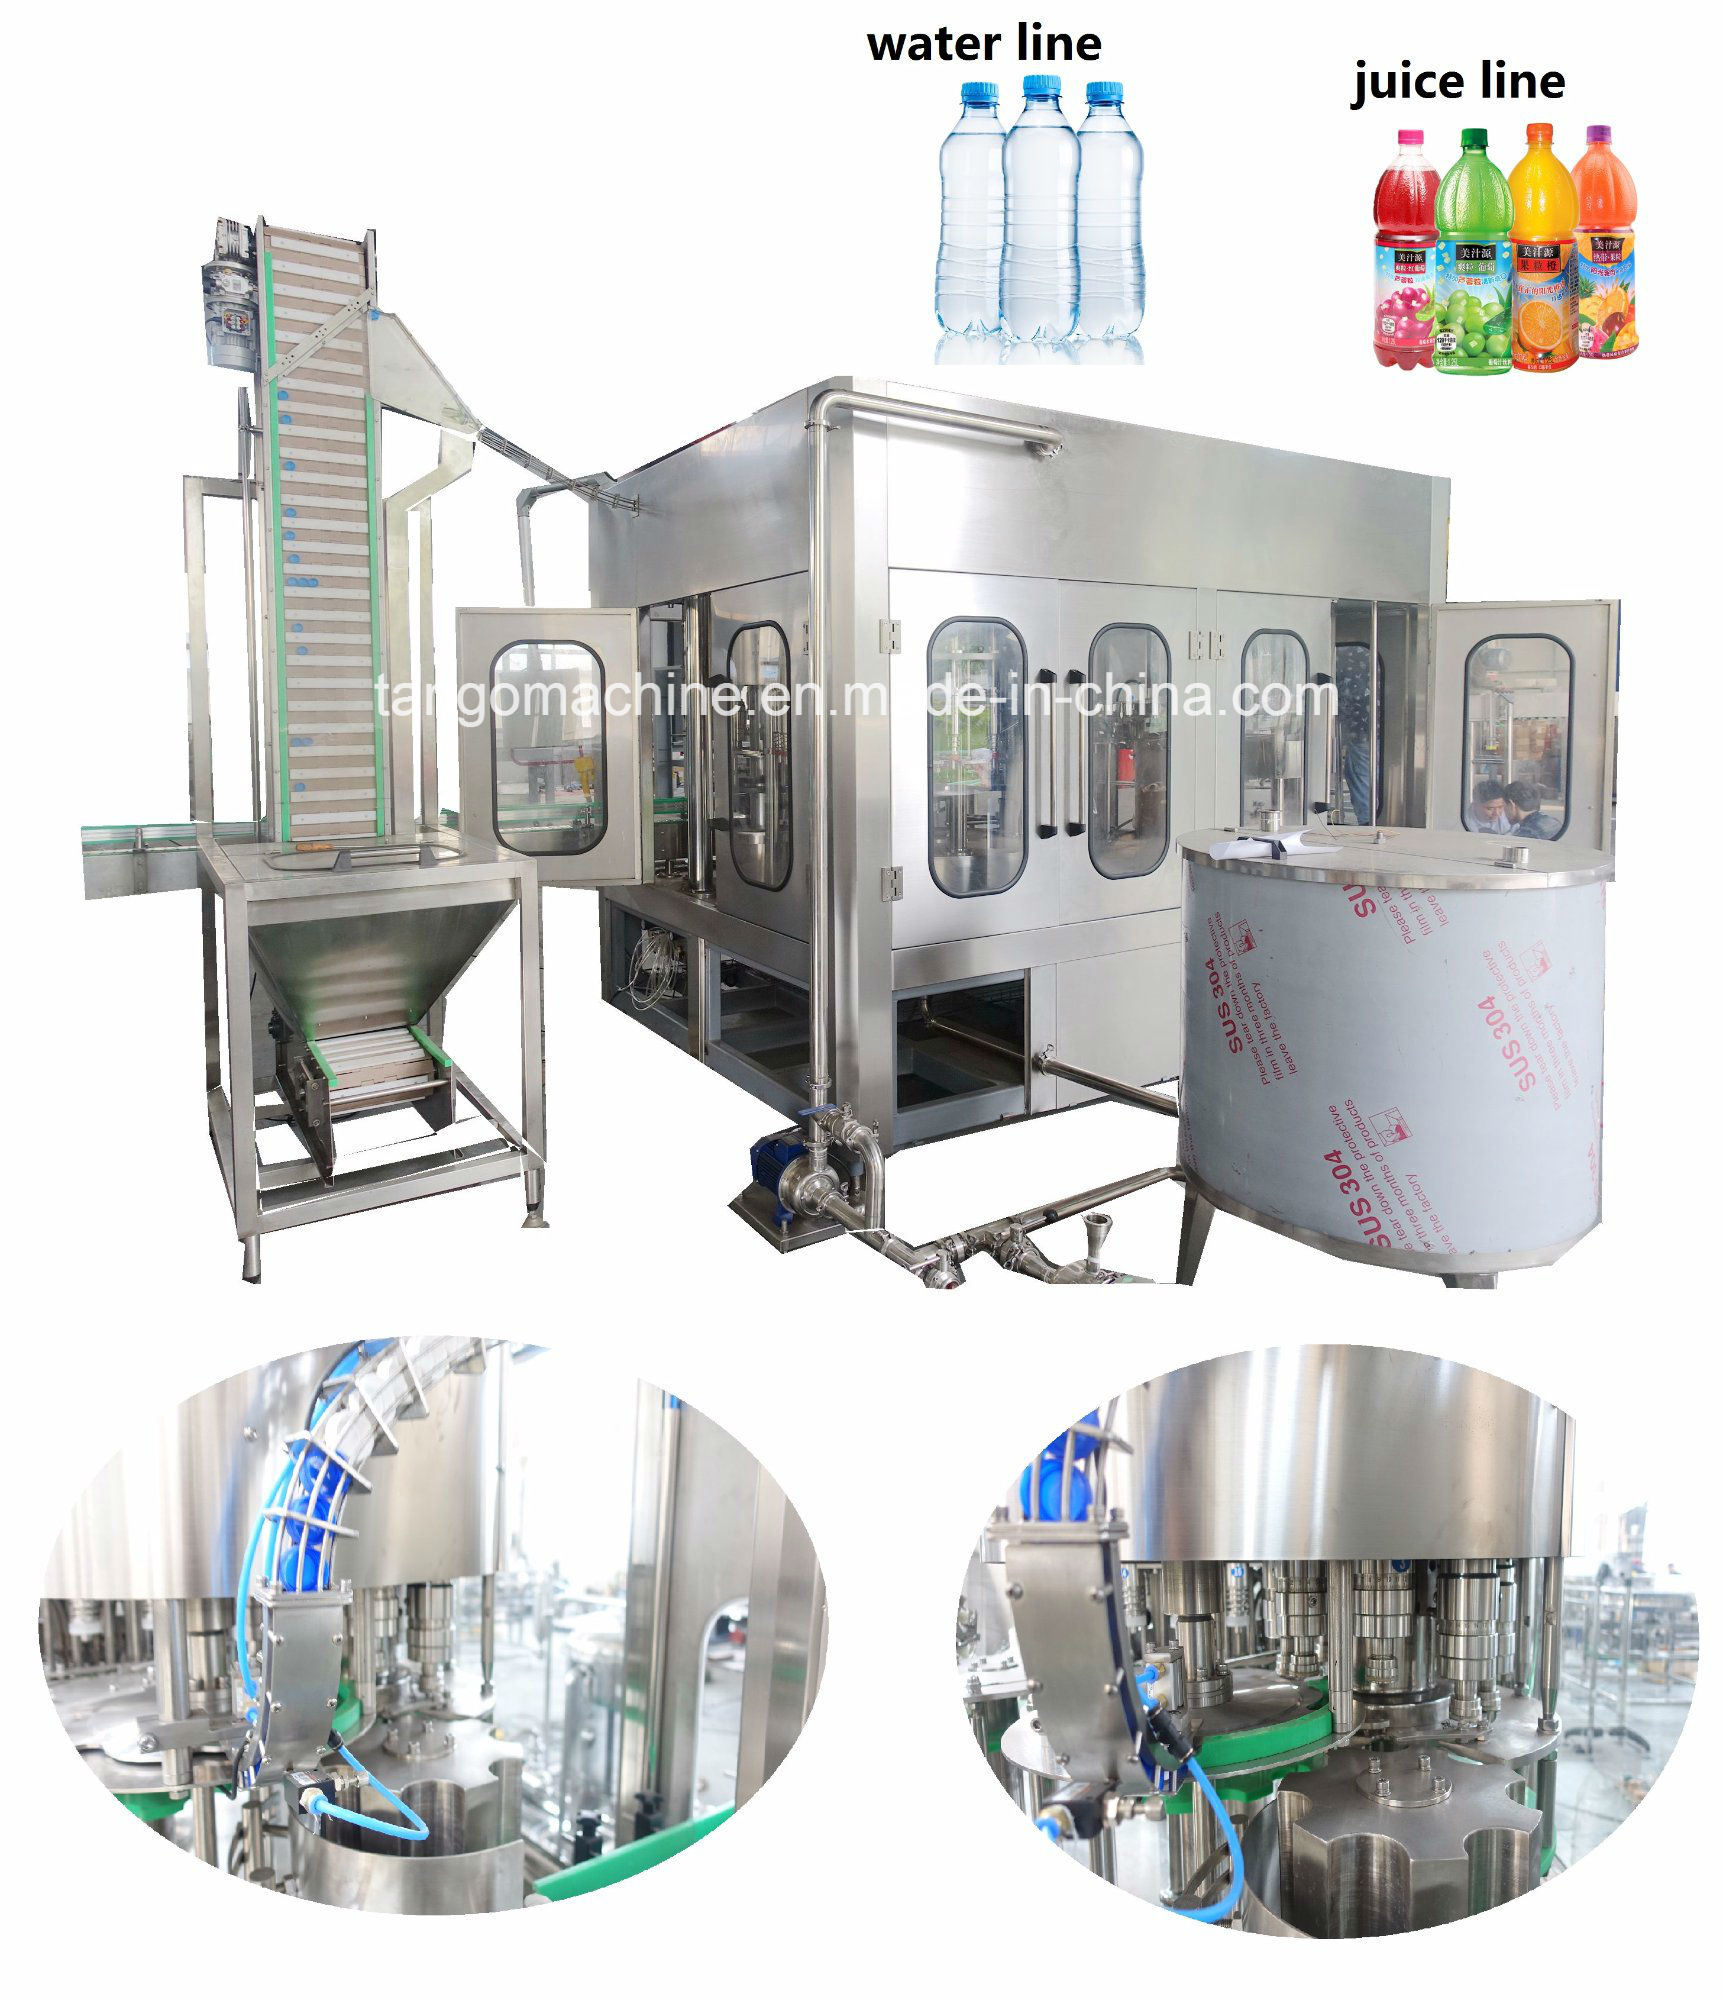 Complete Turn-Key Auto Liquid Pet Bottle Filling Water Bottling Plant Machine Packing Production Line